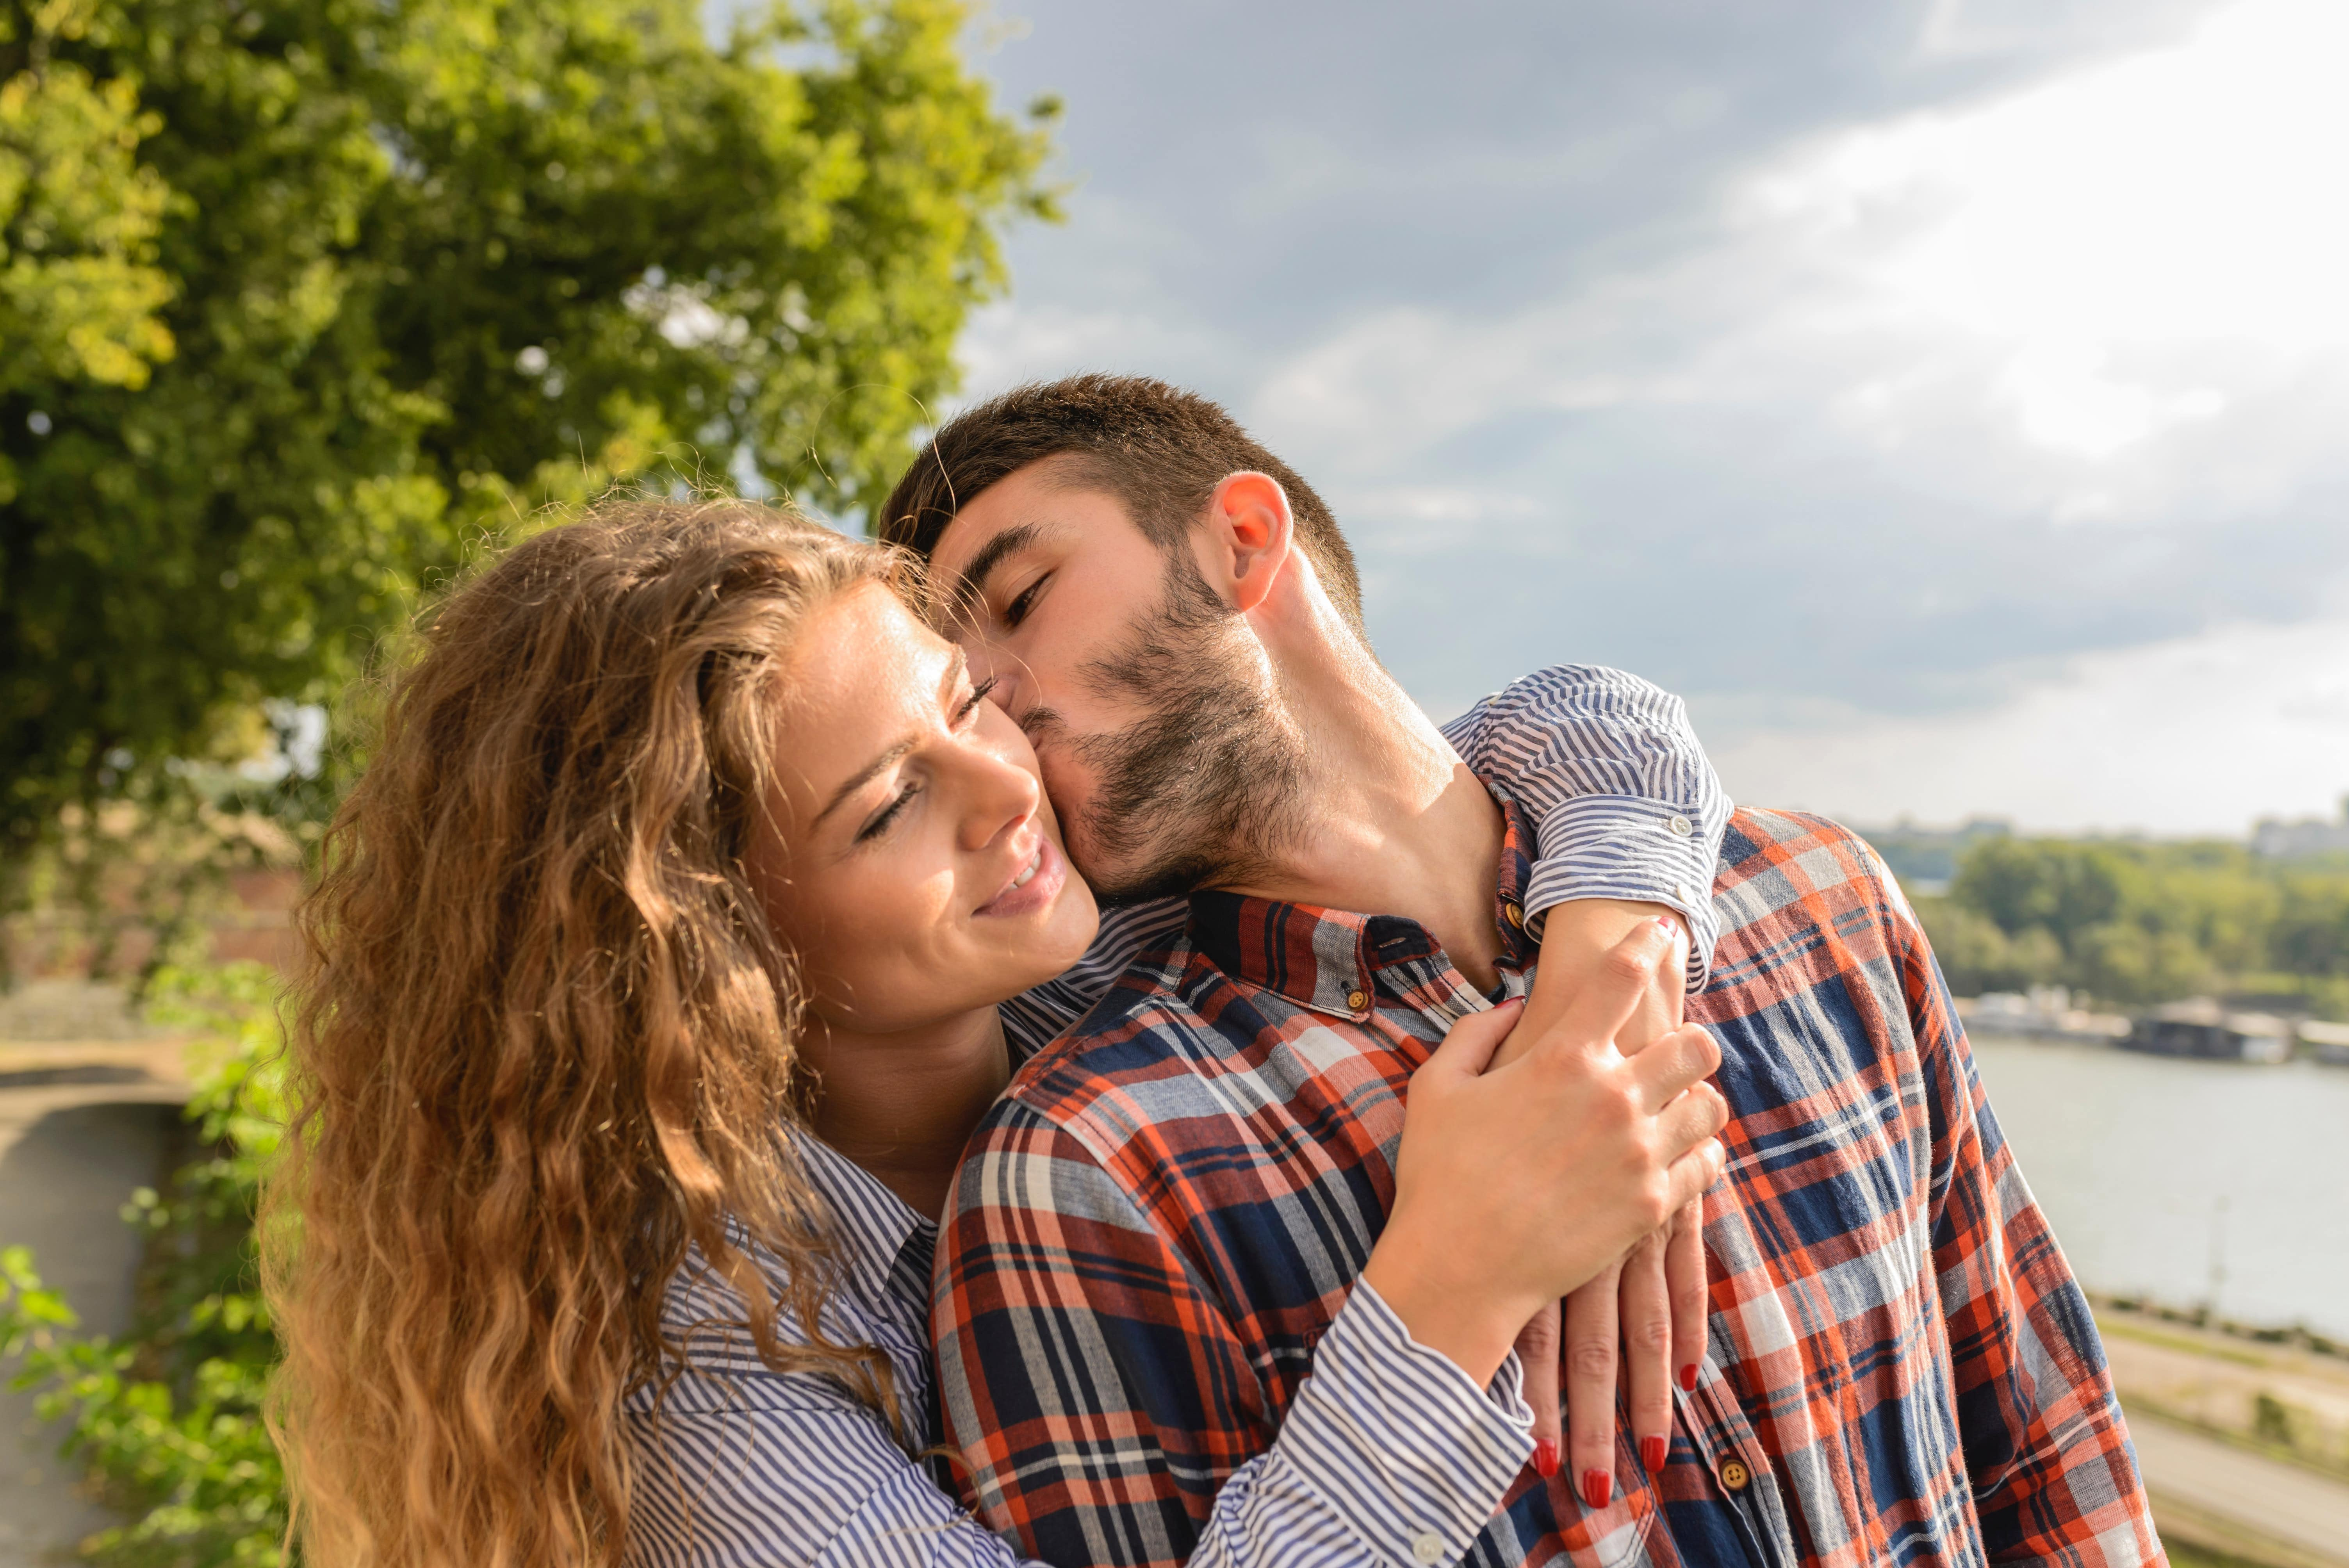 Dating personal christian dating service for college students